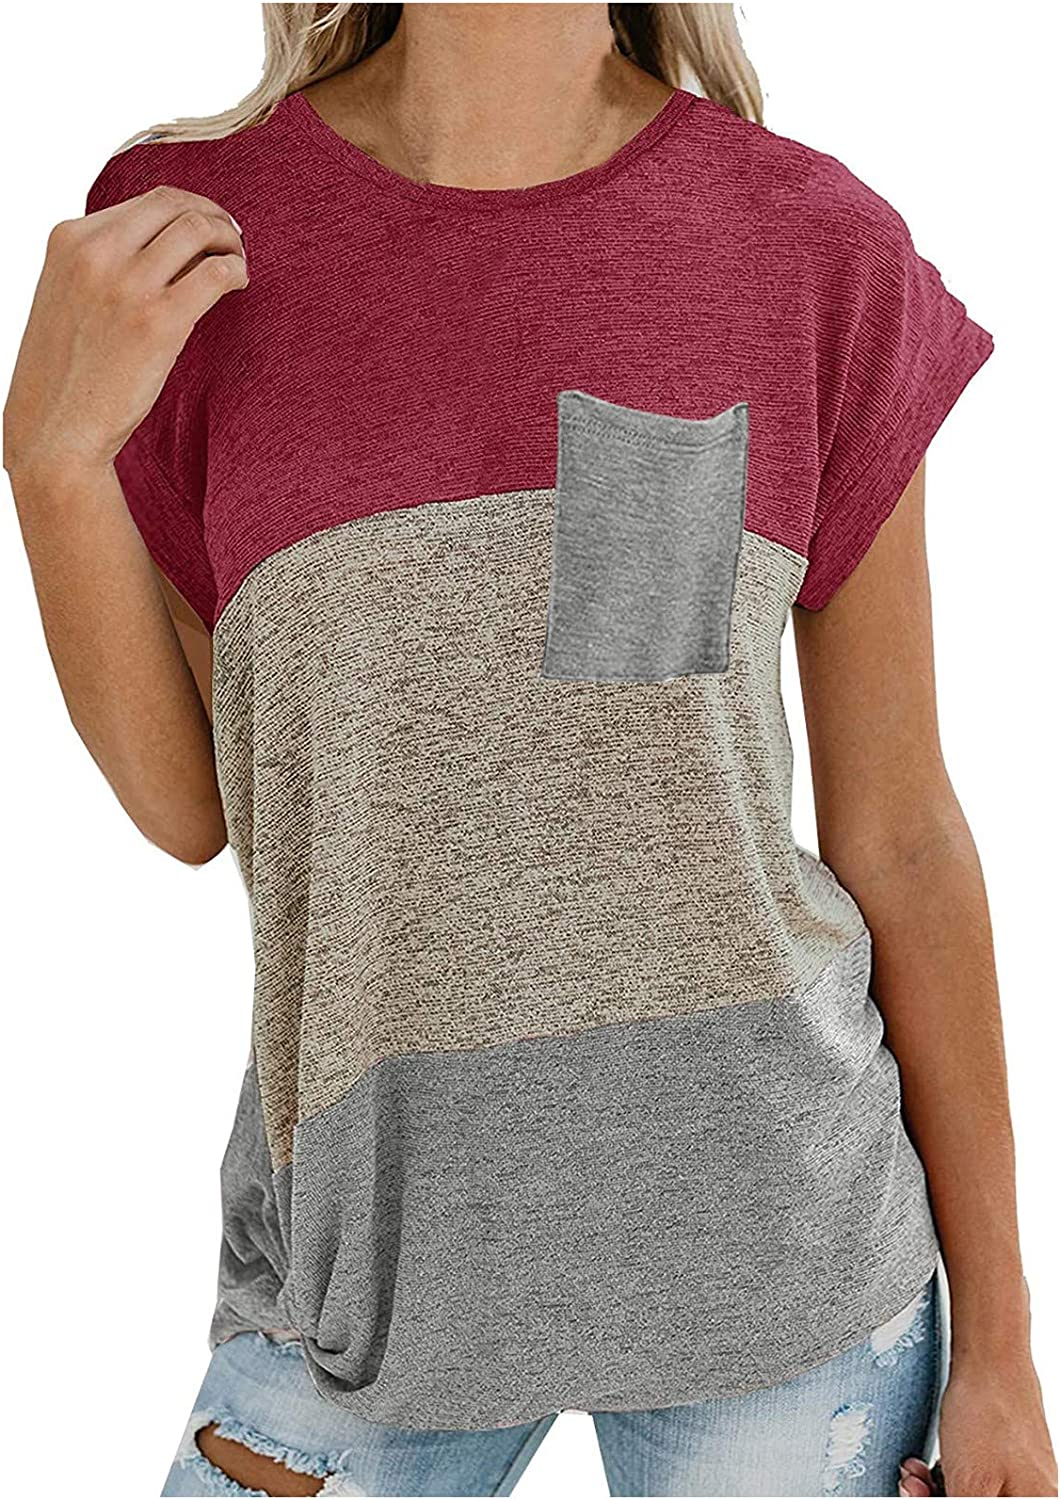 FABIURT Womens Short Sleeve Tops,Women Fashion Color Block Printed Twsit Knot T Shirts Summer Casual Loose Blouse Tops